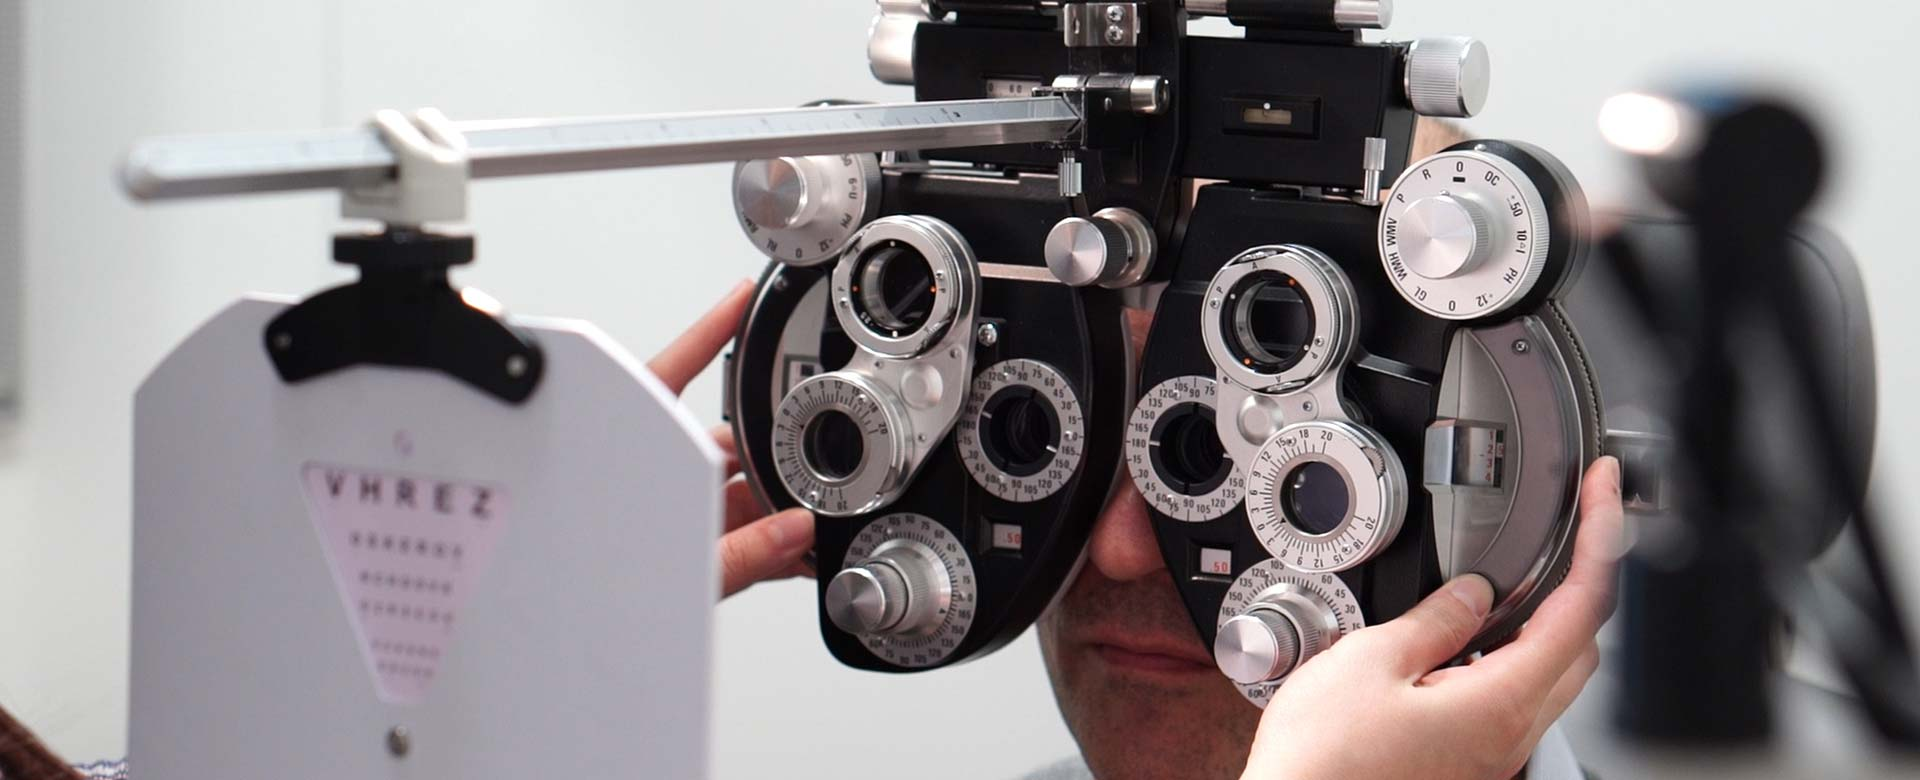 All Eye Care Doctors Services Patient Eye Exam